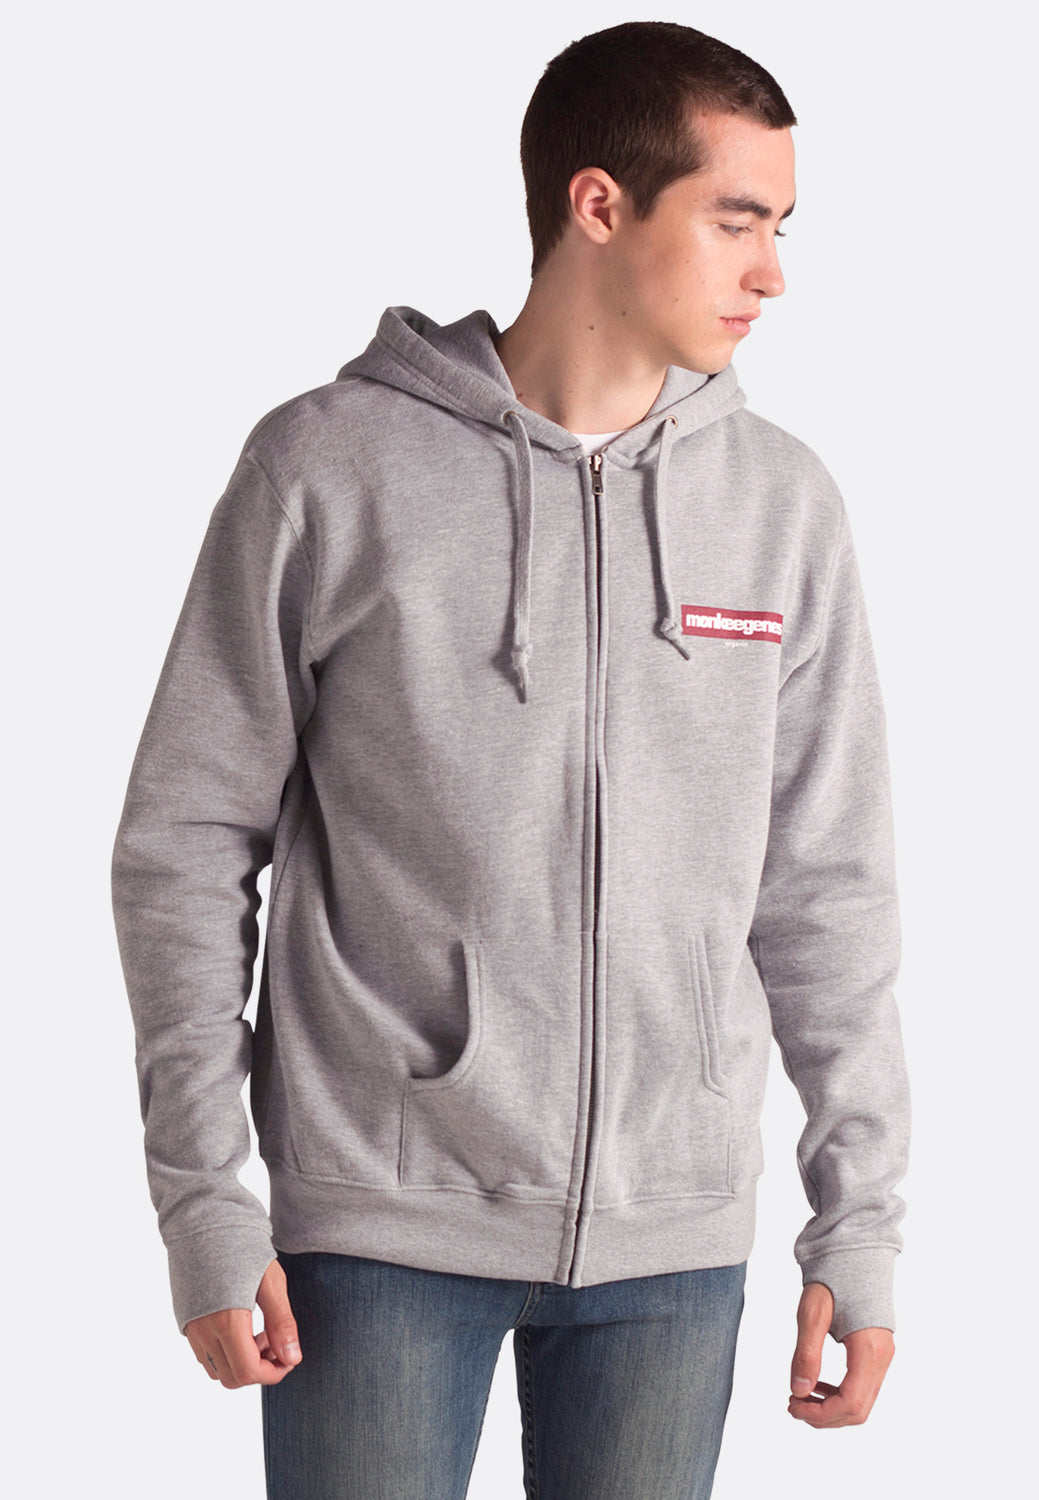 Men's Organic Cotton Zip Up Hoody in Grey - Monkee Genes Organic Jeans Denim - Men's Hoodies Monkee Genes Official  Monkee Genes Official